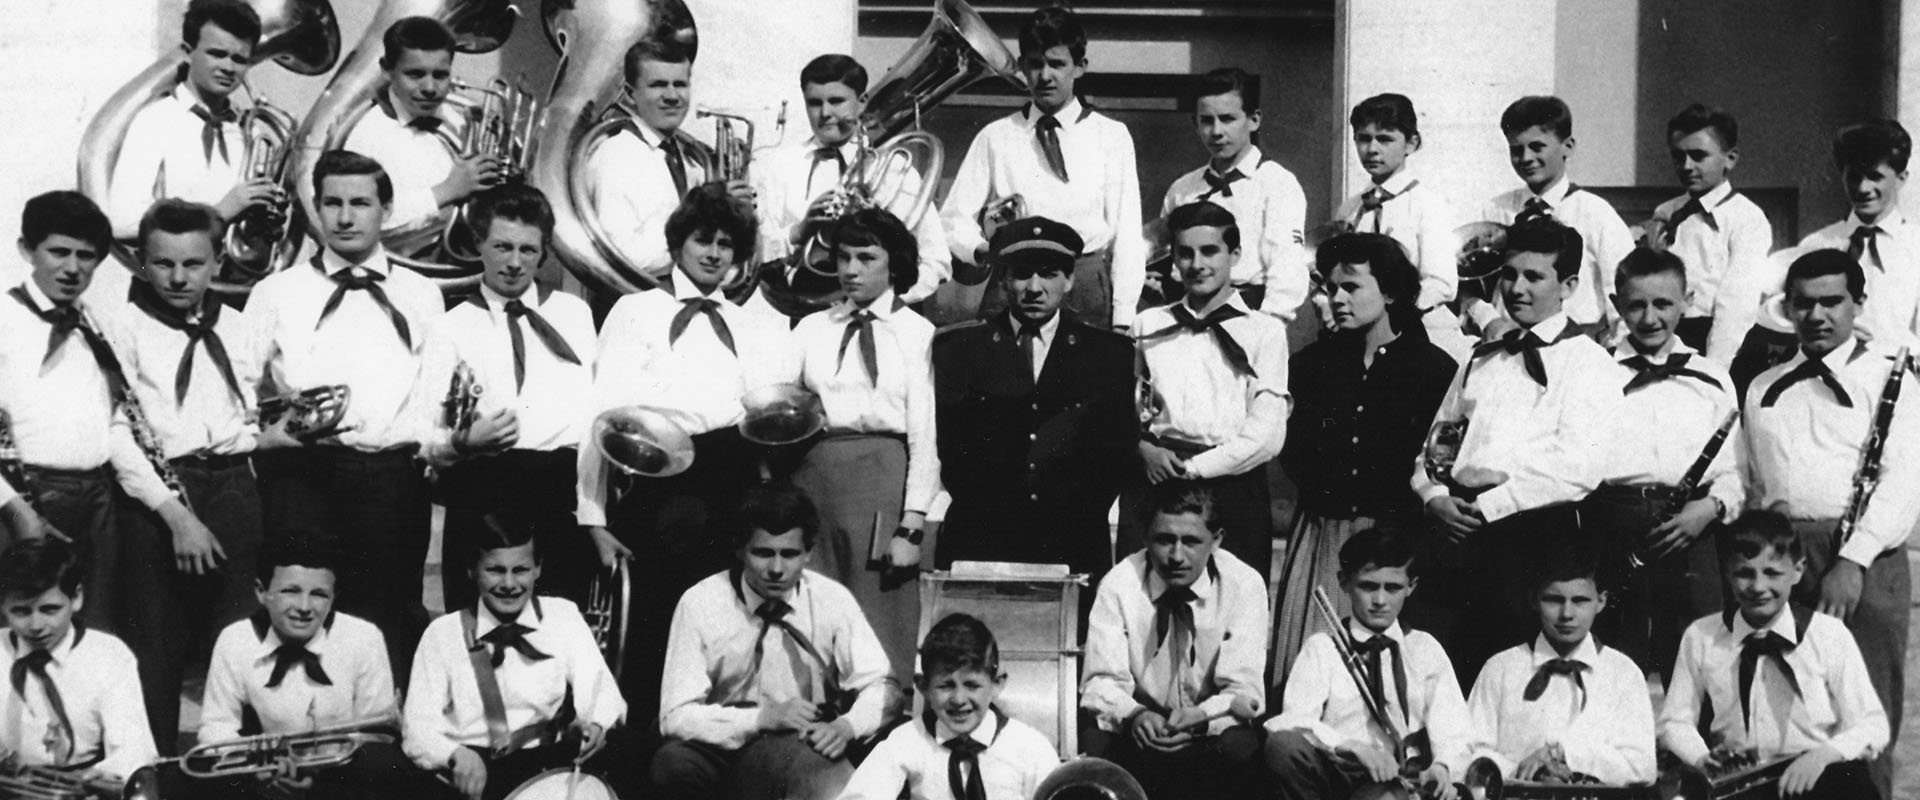 april_1960_dychovy_orchester